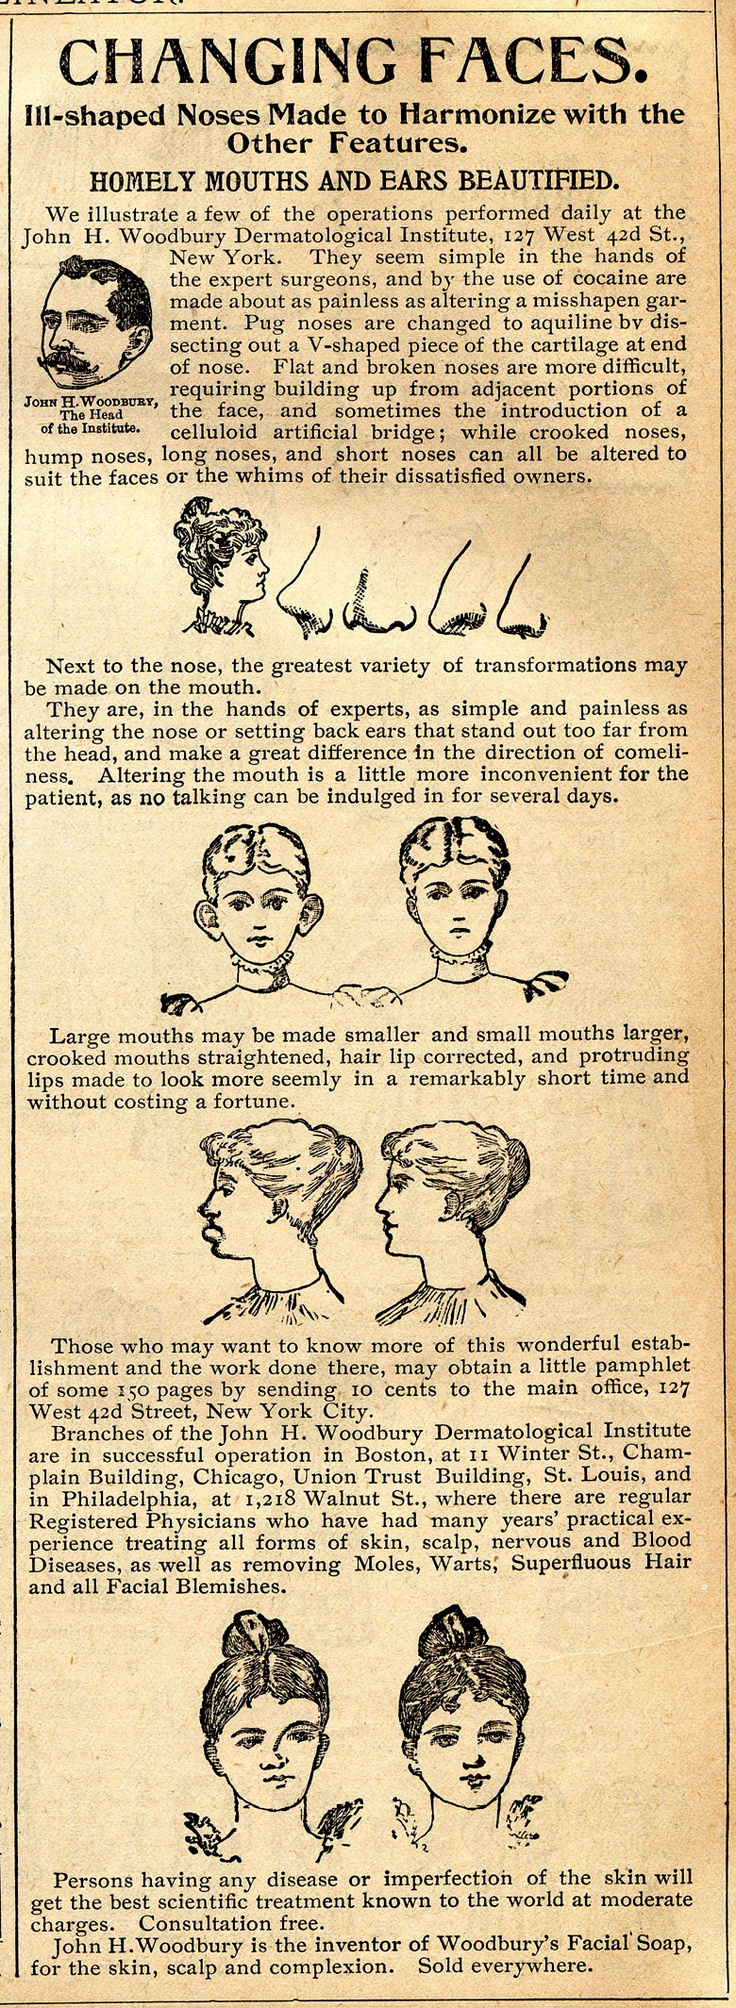 This advertisement from an 1895 Delineator shows how you can fix all your problem areas including nose jobs, ear pinning, lip enhancement and reductions, and a long list of dermatological corrections. All of these surgeries are made nearly painless with the copious amounts of cocaine given to the patients before and after surgery.